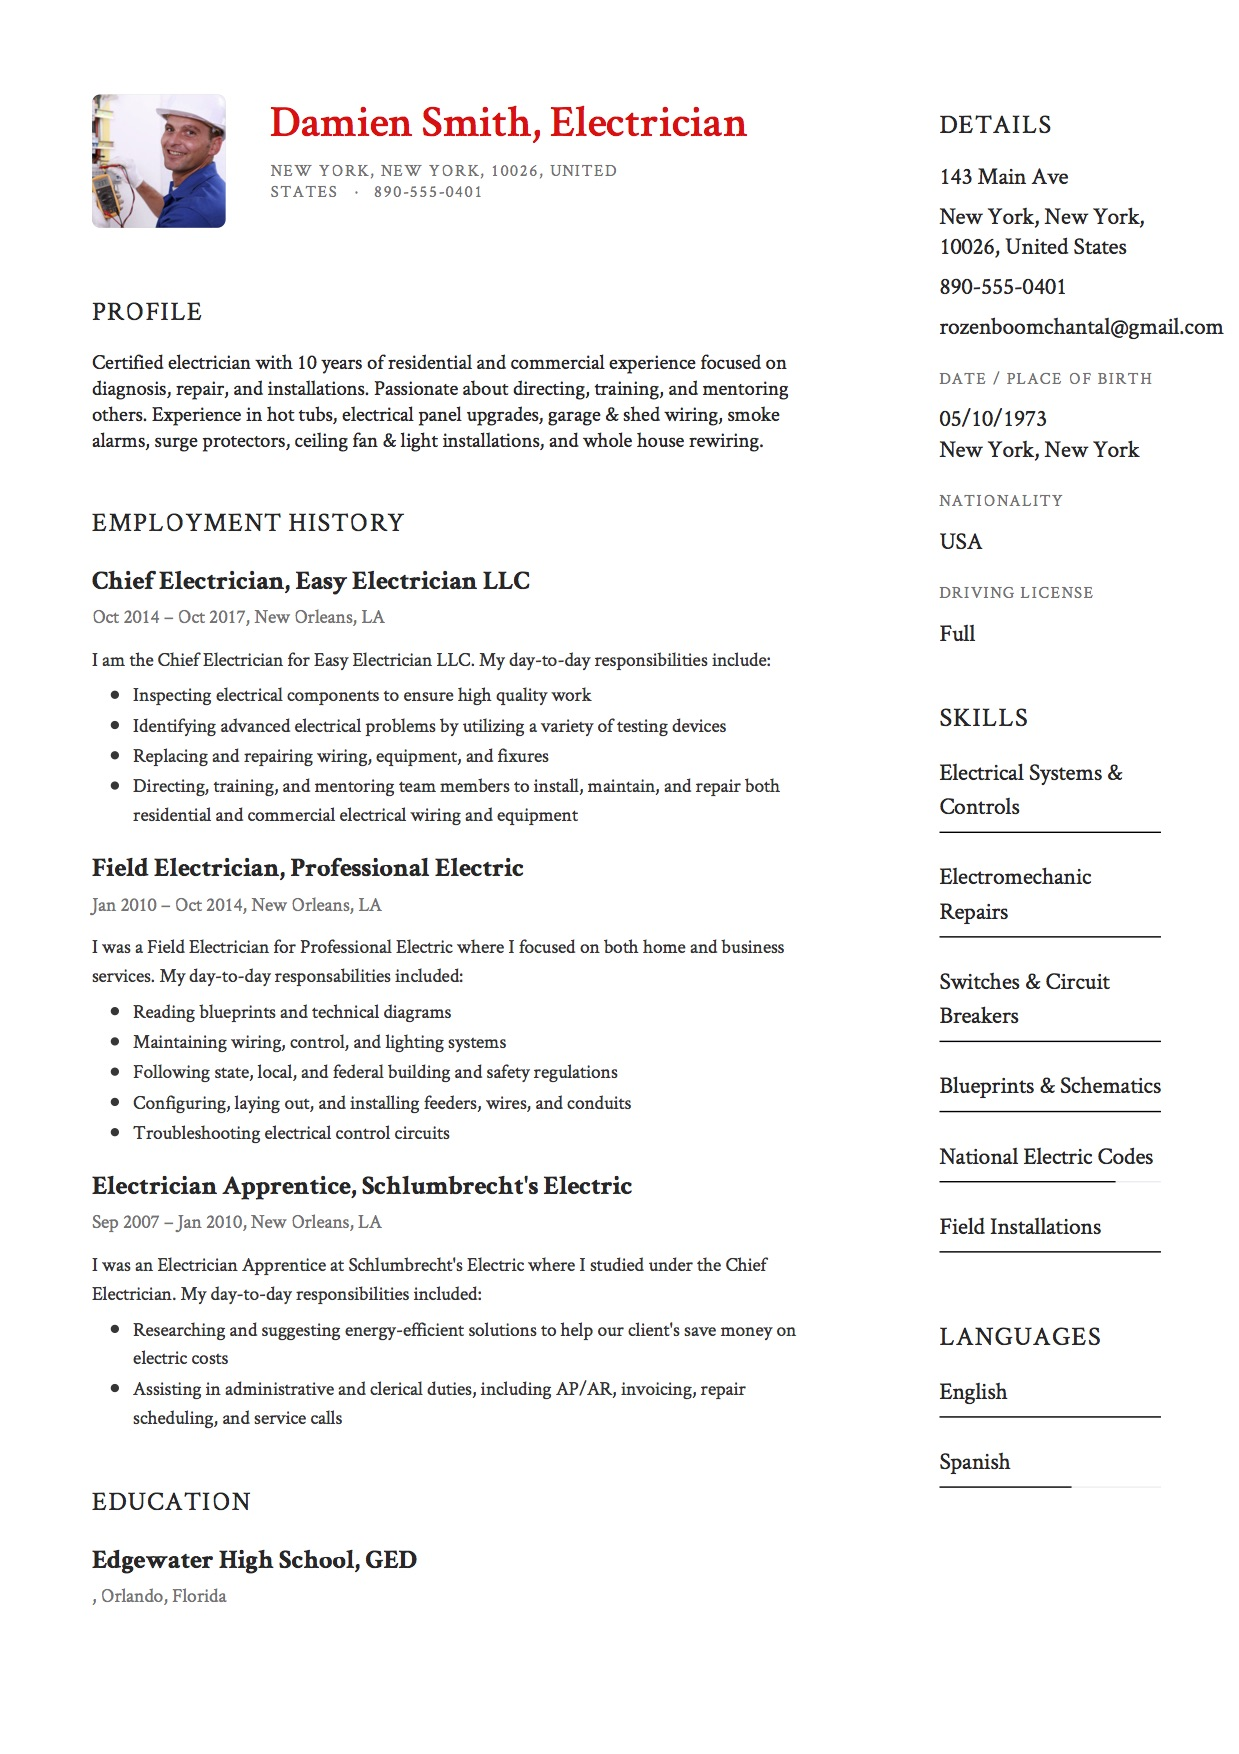 sample resume electrician - Resume For Electrician